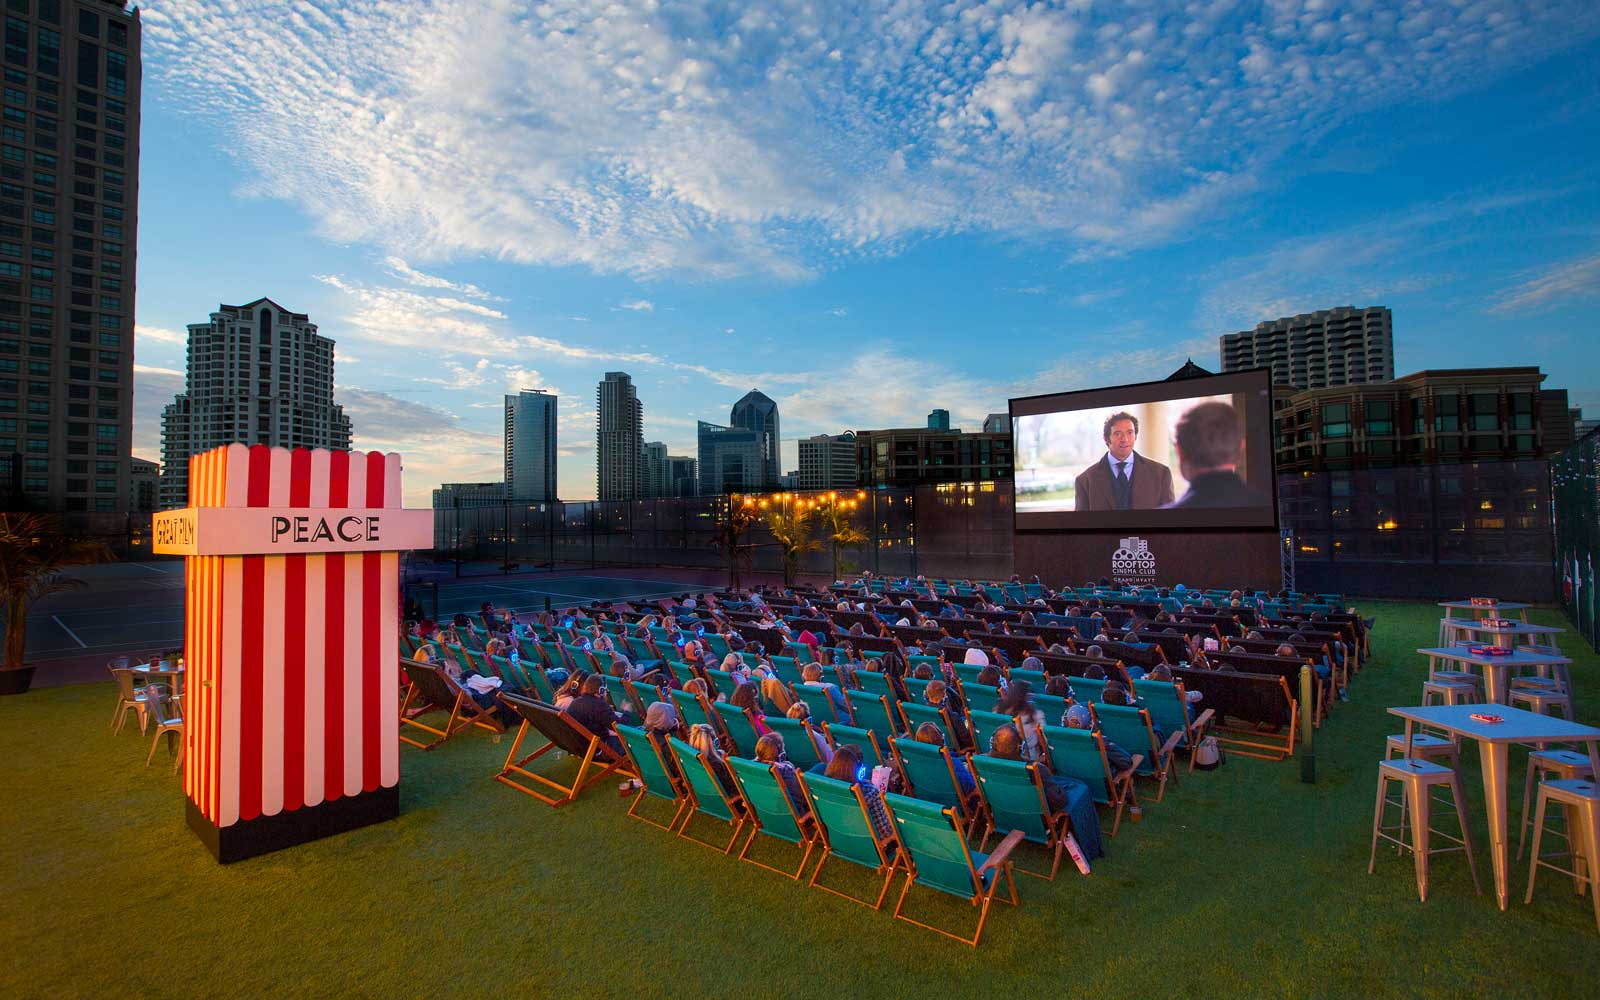 Rooftop Cinema Club screening at Manchester Grand Hyatt in San Diego